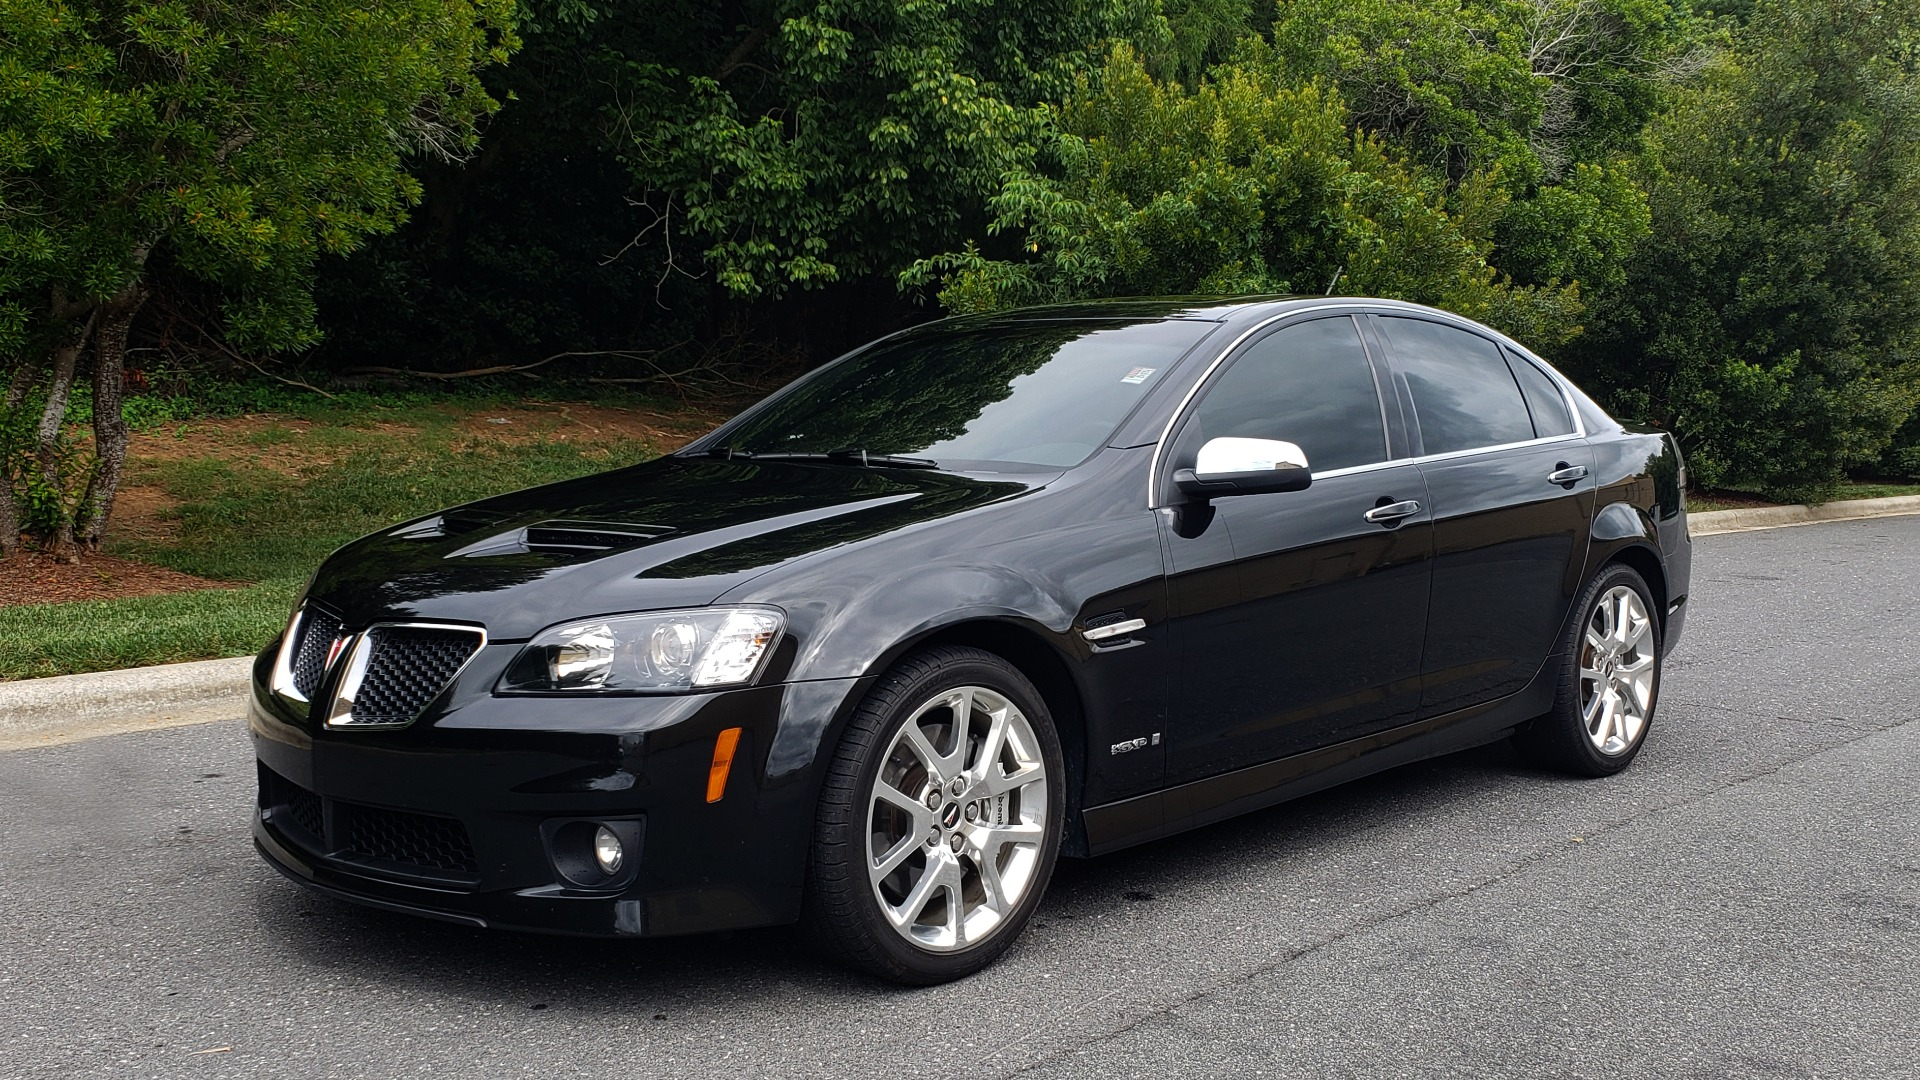 Used 2009 Pontiac G8 GXP / 6.2L LS3 V8 / 6-SPD AUTO / SUNROOF / 19IN WHEELS for sale Sold at Formula Imports in Charlotte NC 28227 4